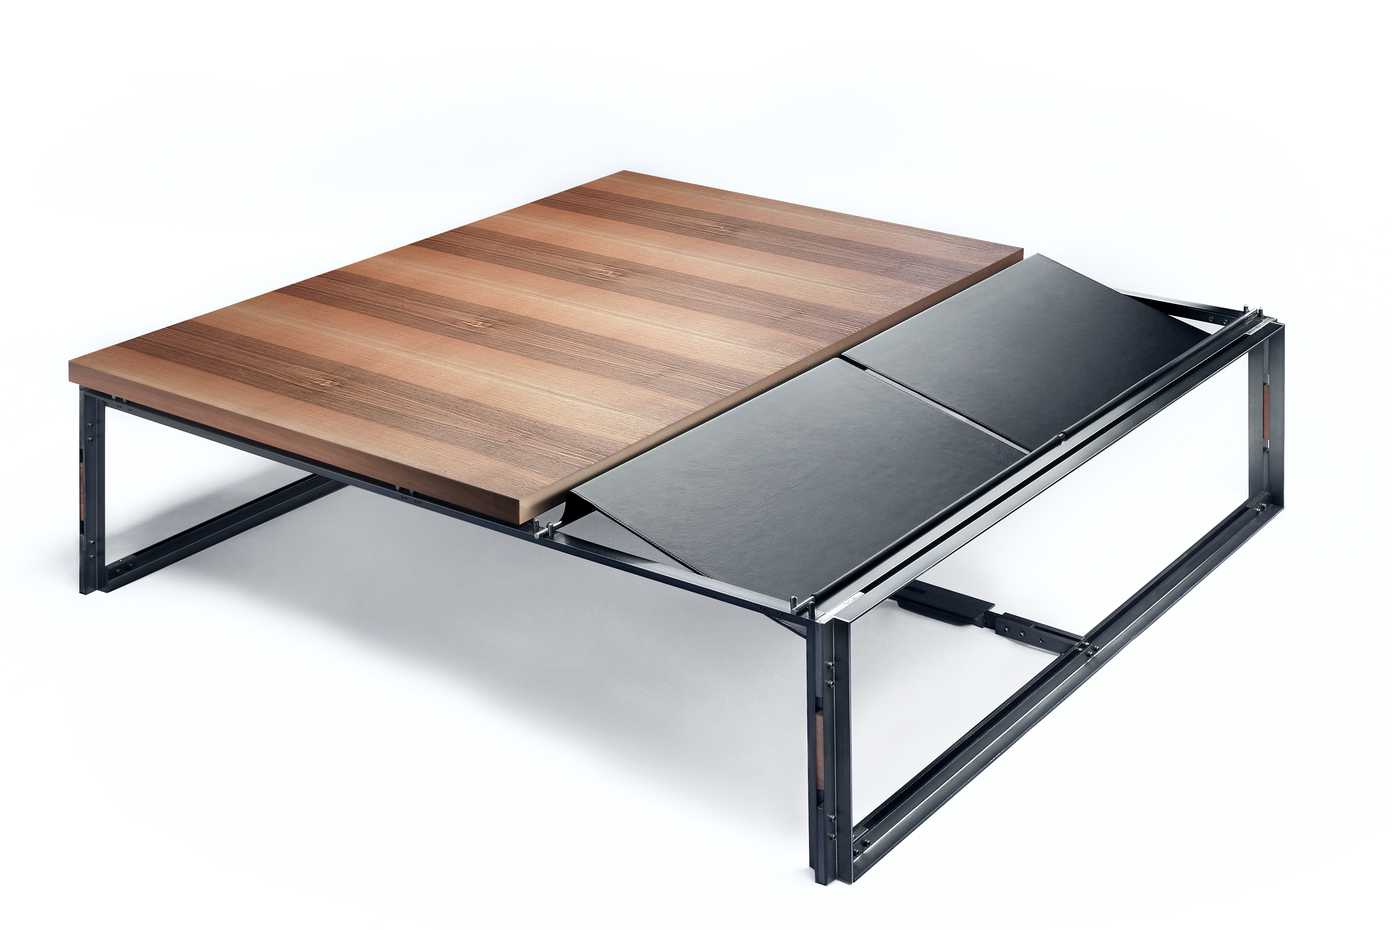 Tecnica Low Table by Dessie product image 2